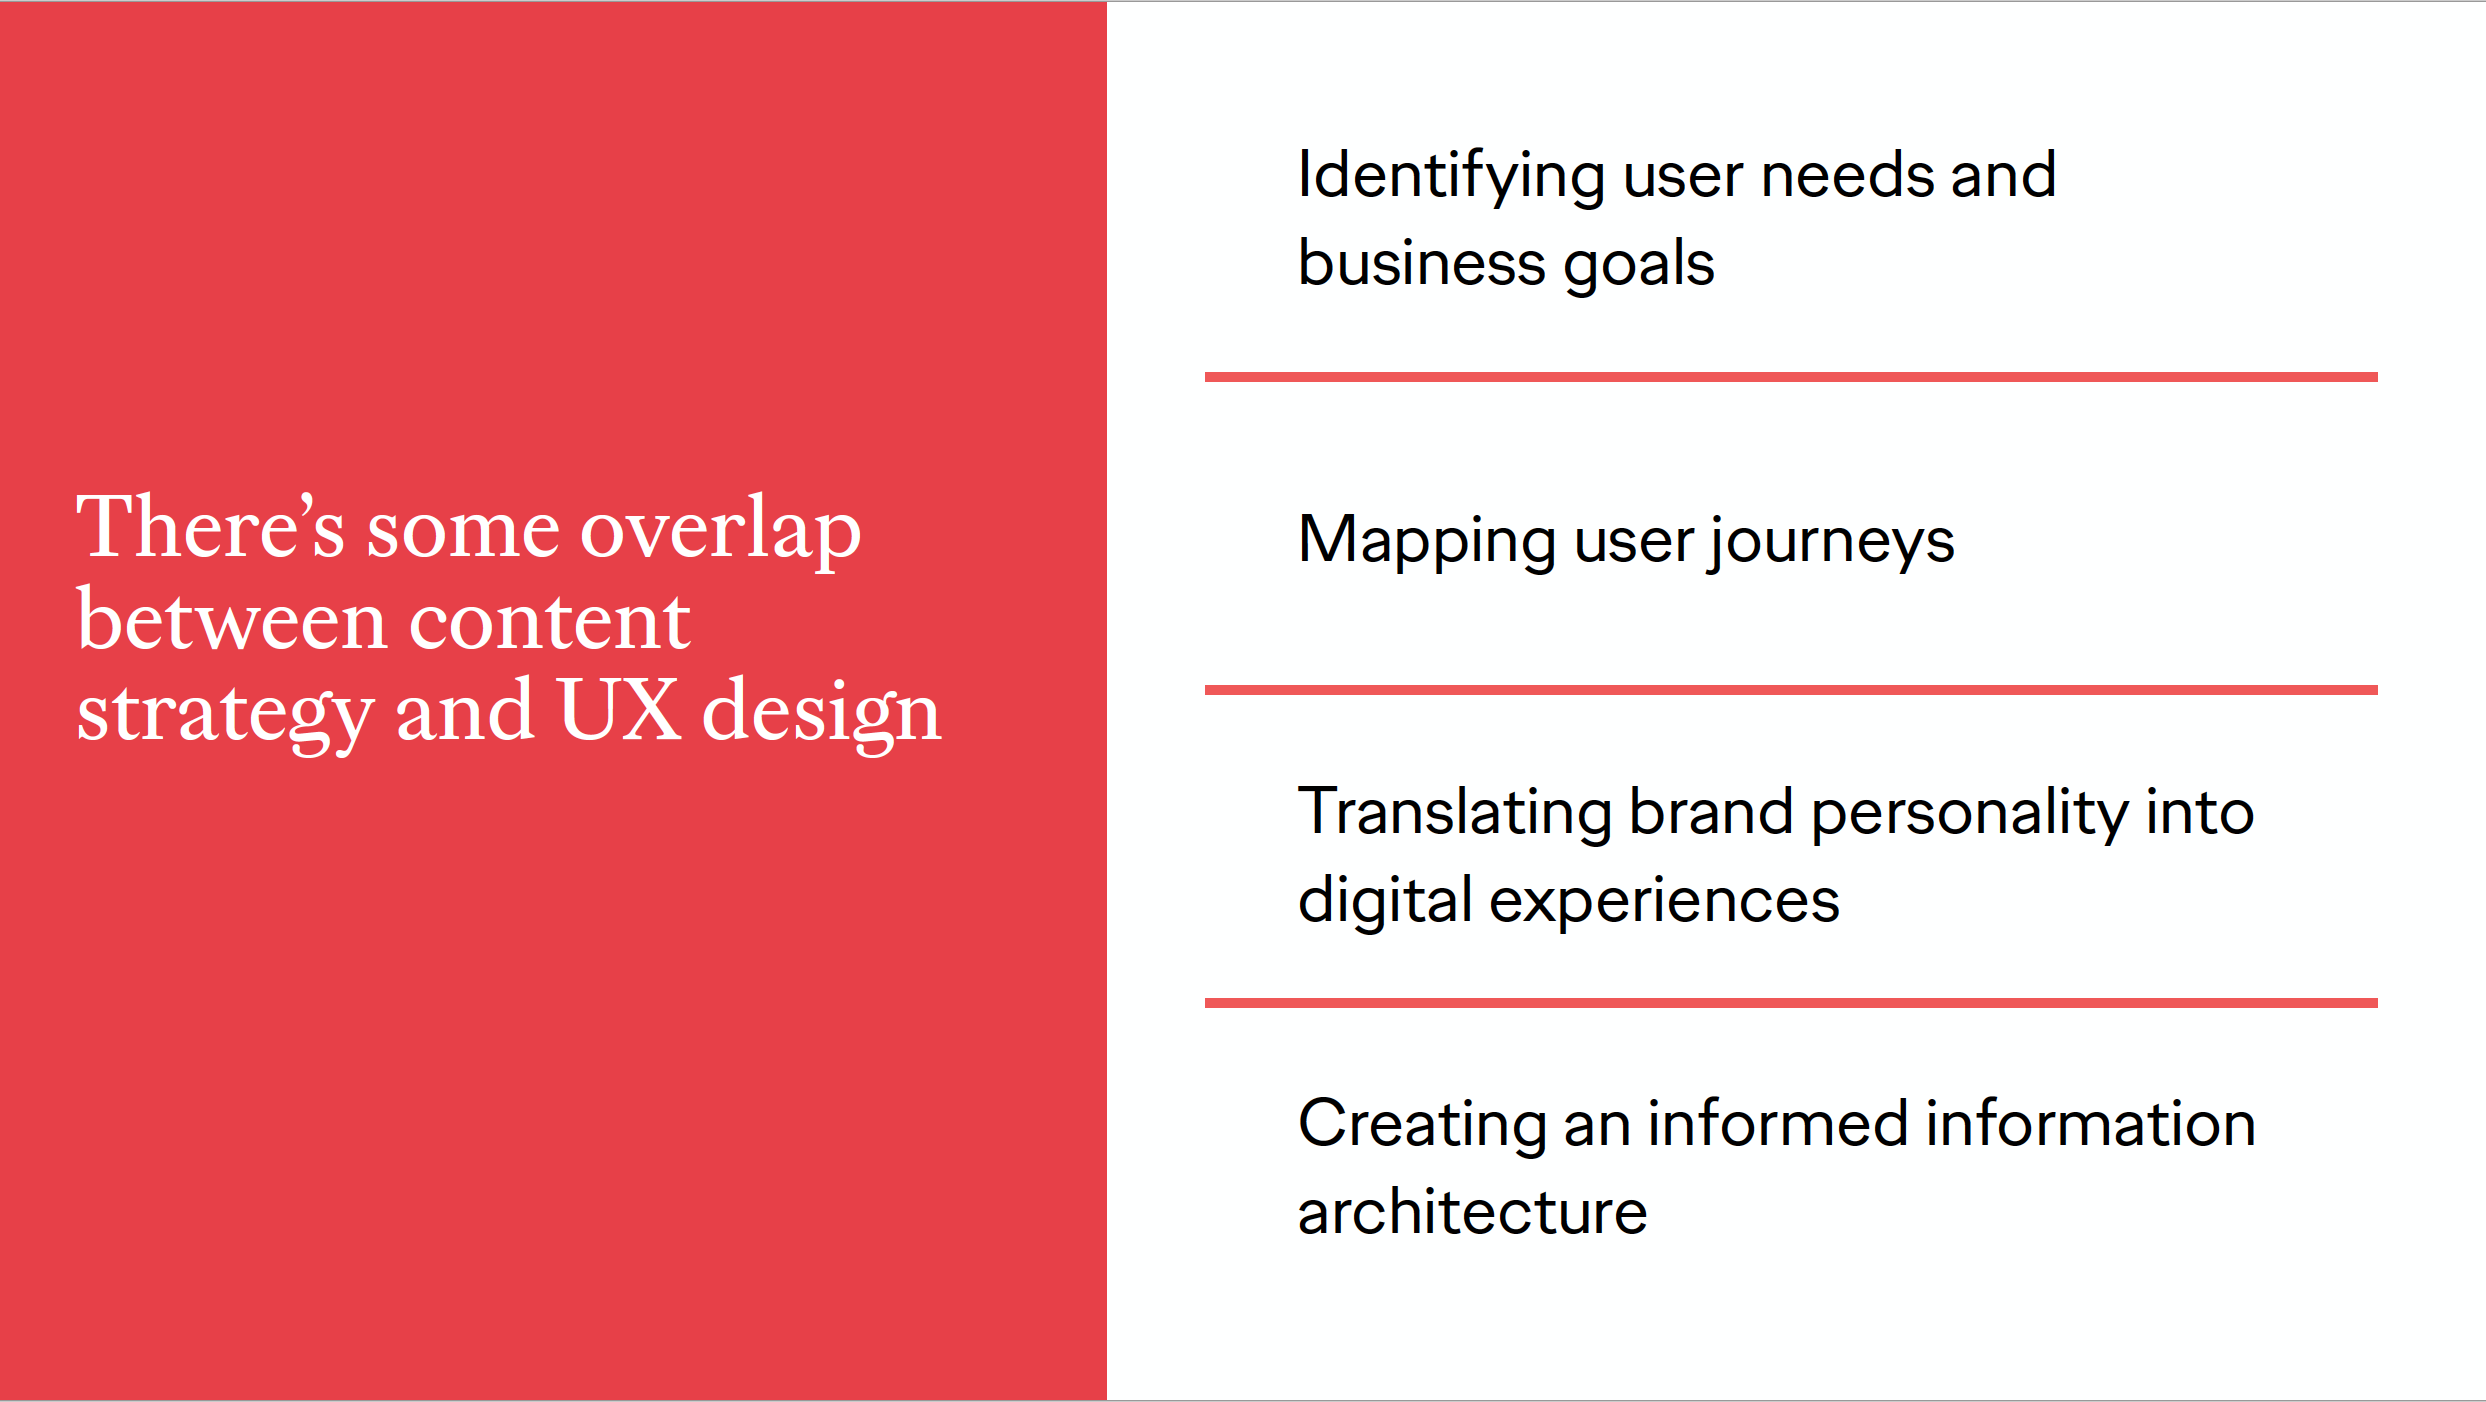 A slide explaining how content strategy and ux design have overlapping goals